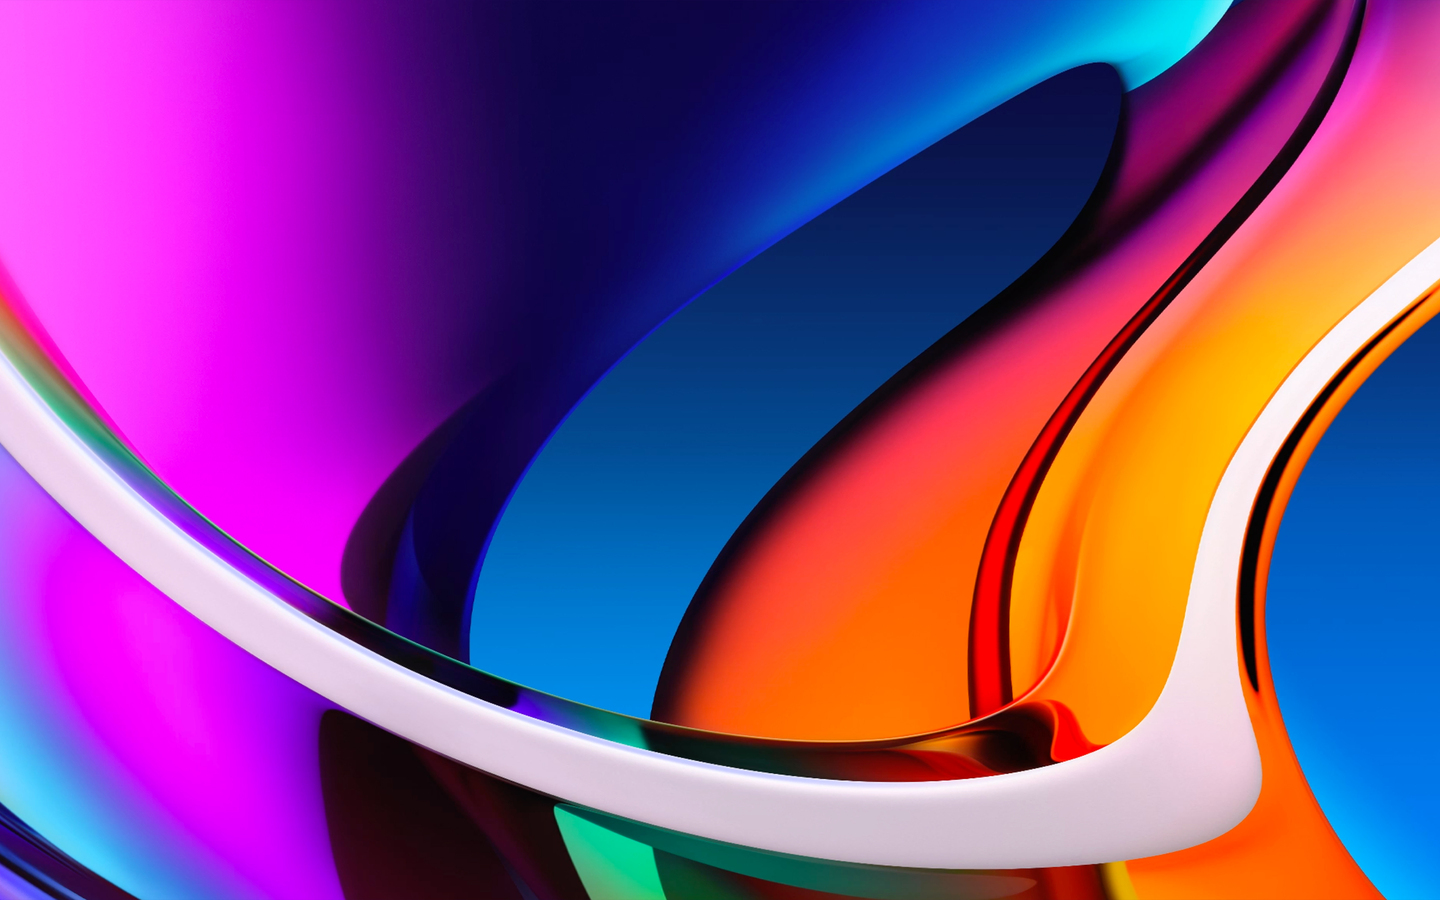 abstract-colorful-glass-bend-shapes-4k-7n.jpg